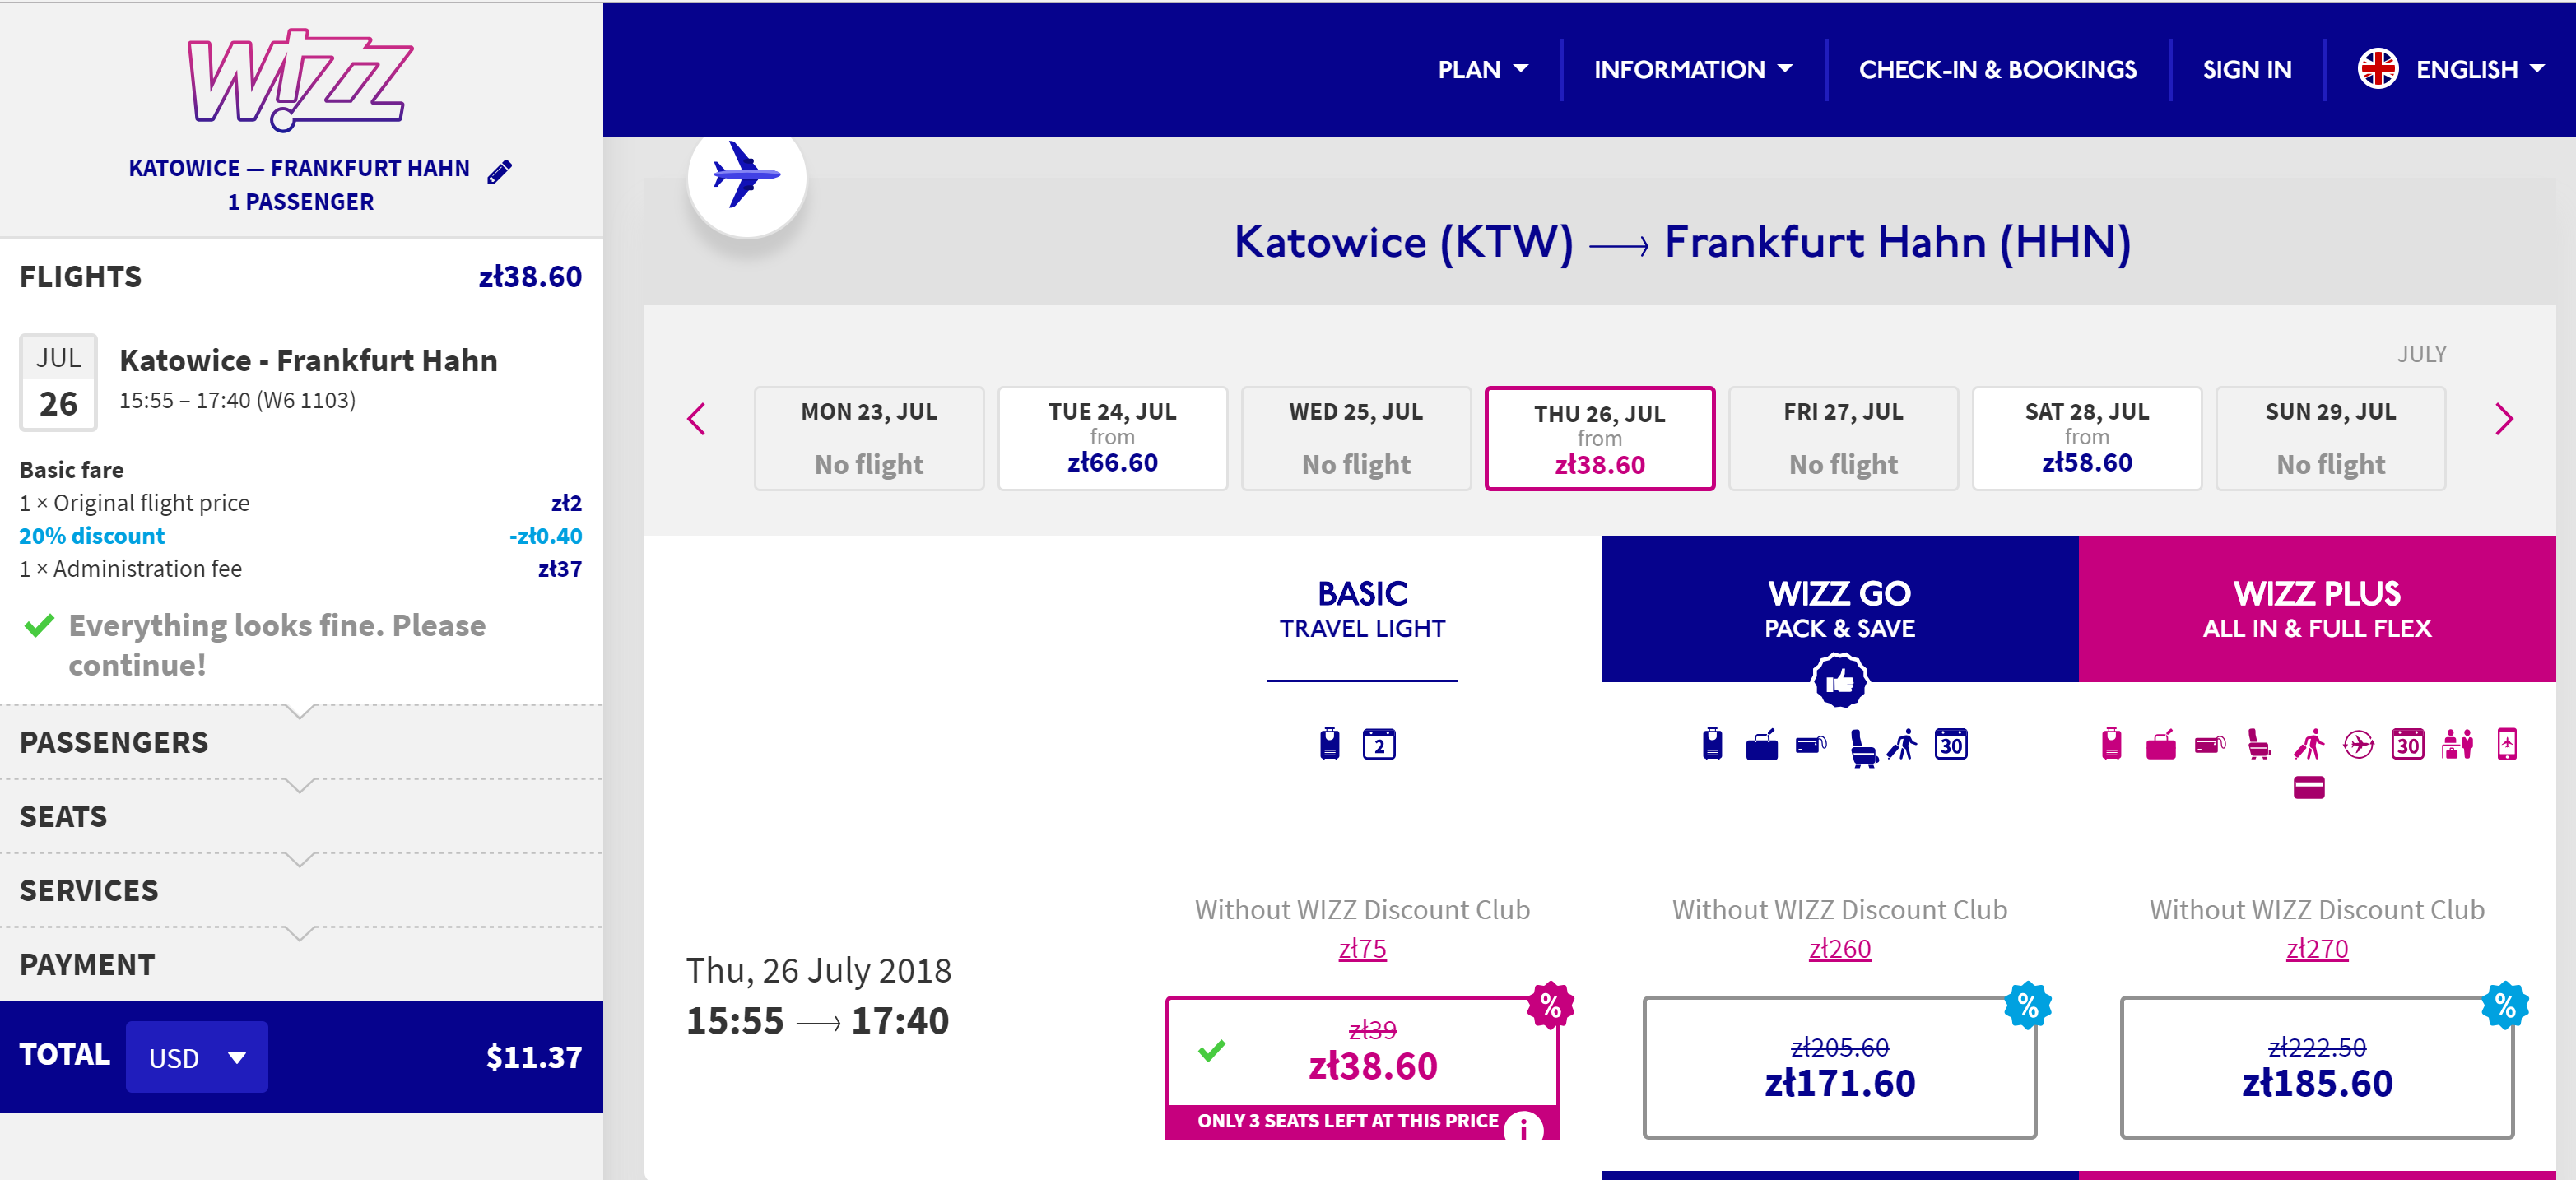 Wizz Air flash sale $11 summer flights and more.